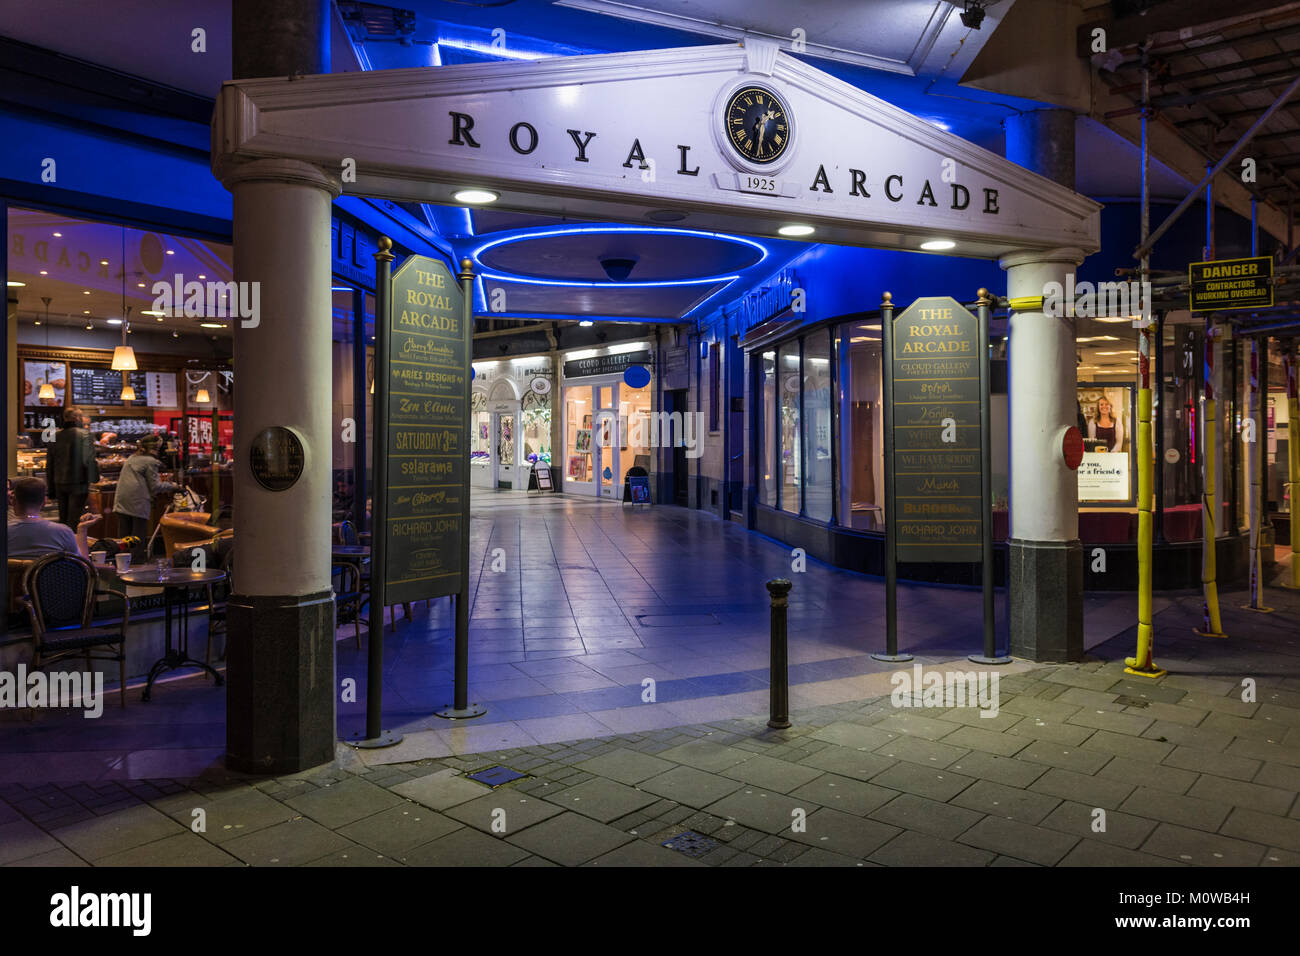 The Royal Arcade small shopping mall lit up at night in Worthing, West Sussex, England, UK. - Stock Image